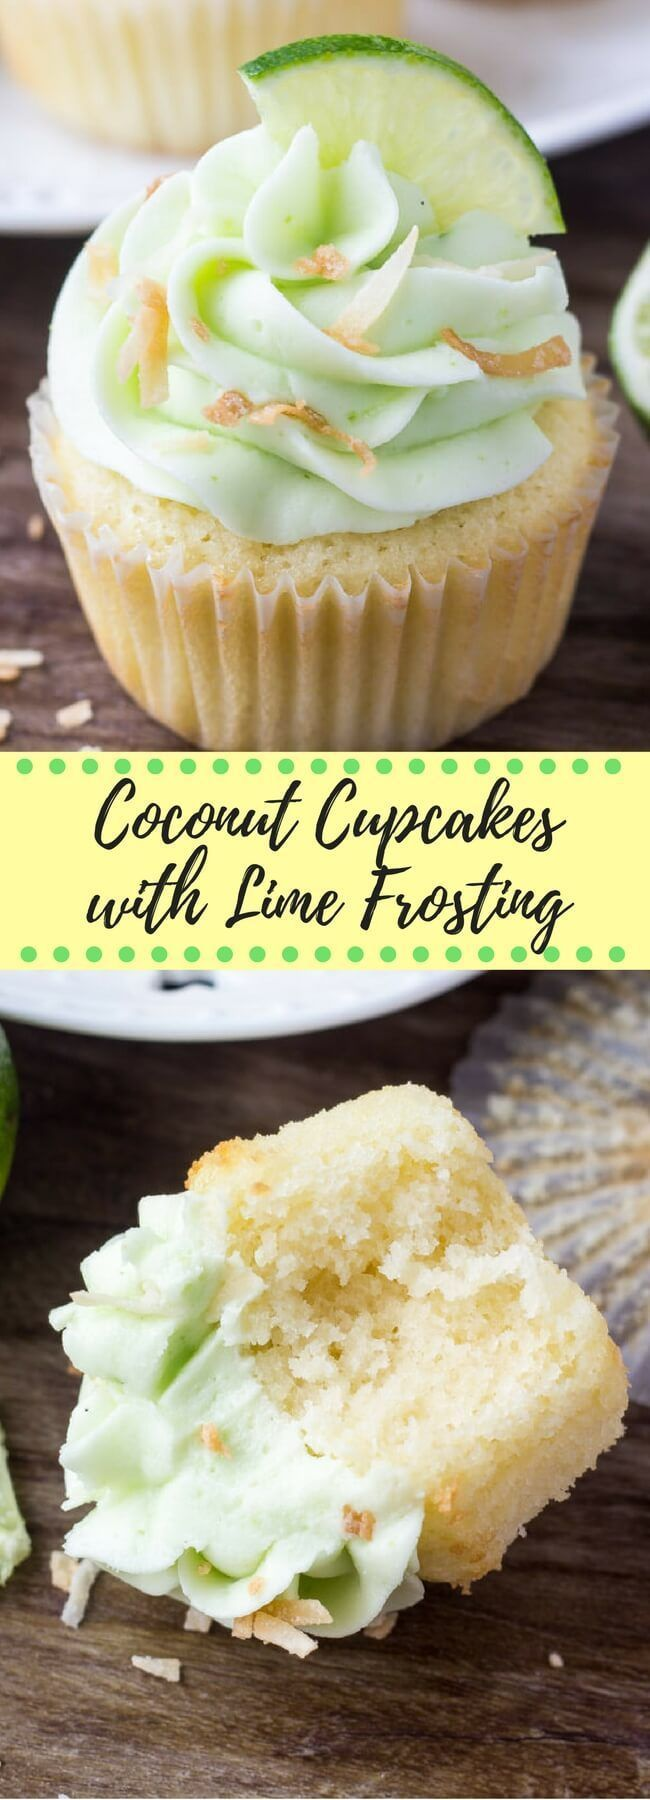 cupcake recipes for bridal shower%0A These coconut cupcakes with lime buttercream frosting have a triple dose of  coconut and a soft